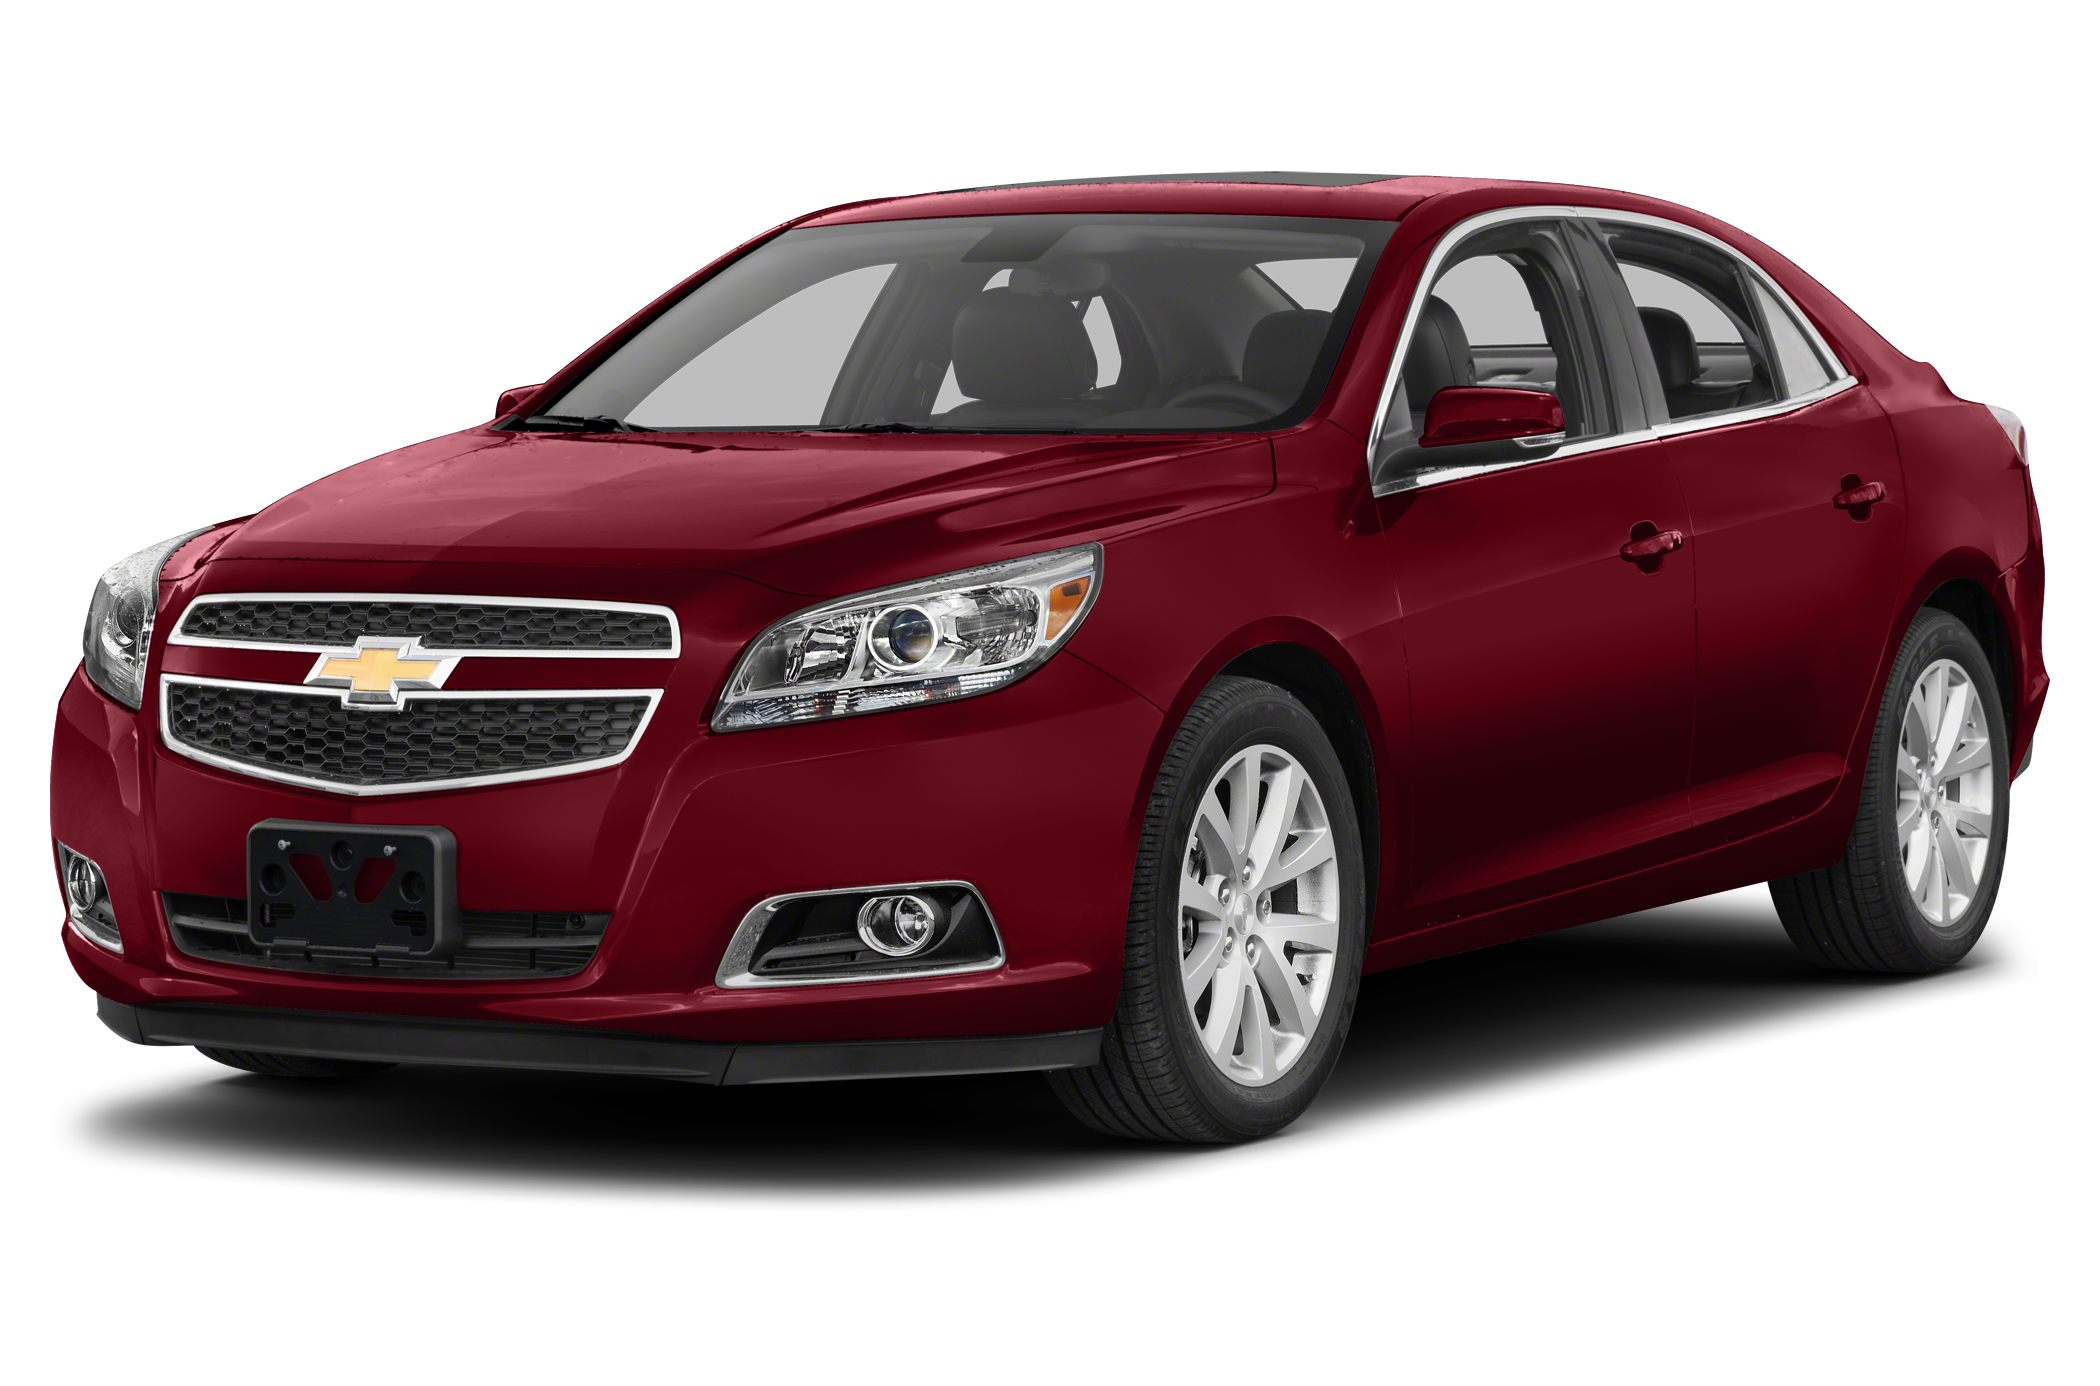 2013 Chevrolet Malibu 1LT Sedan for sale in Anchorage for $14,995 with 26,635 miles.